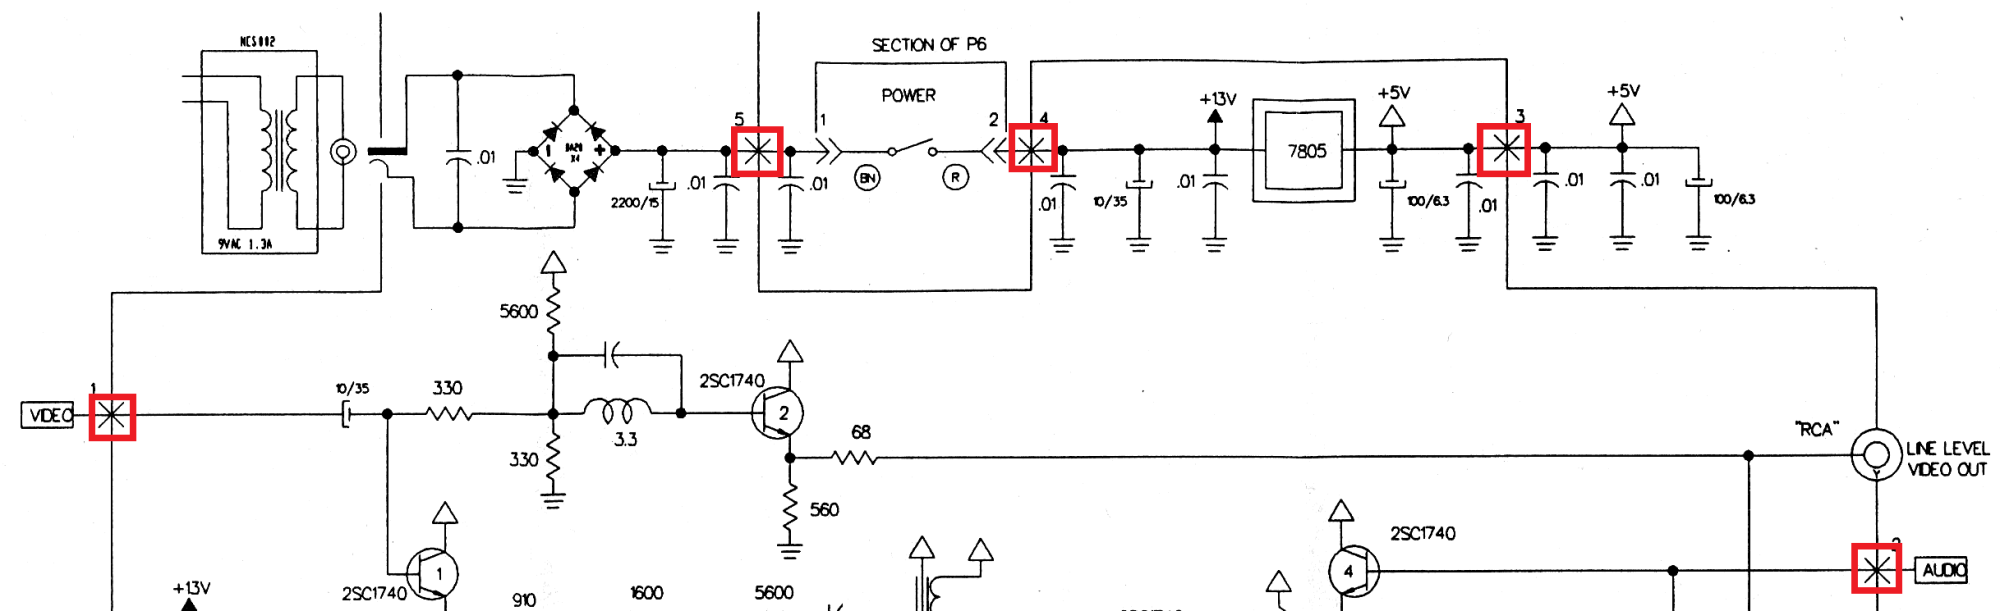 hight resolution of what are these x s crosses on this schematic s wiring traces besides dish work rf modulator on rf modulator wiring diagram